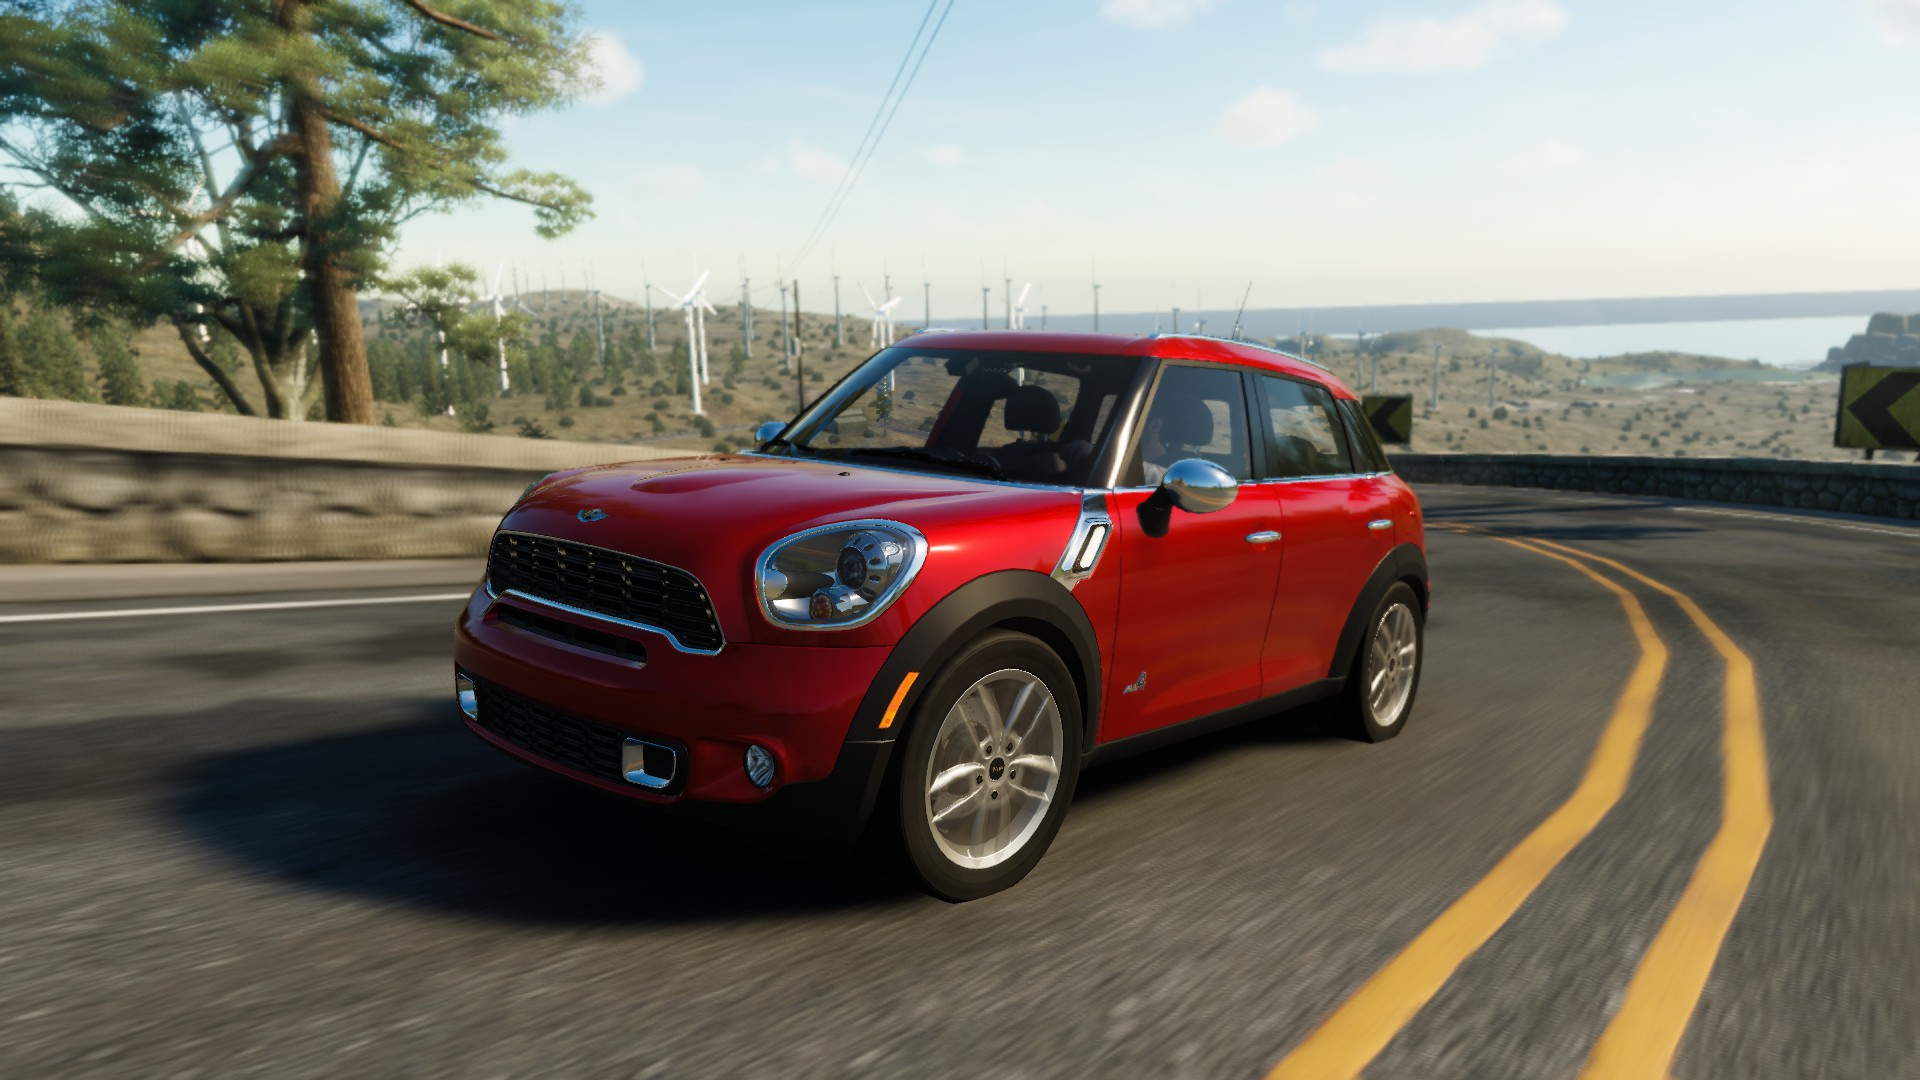 mini cooper s countryman all4 the crew wiki fandom powered by wikia. Black Bedroom Furniture Sets. Home Design Ideas